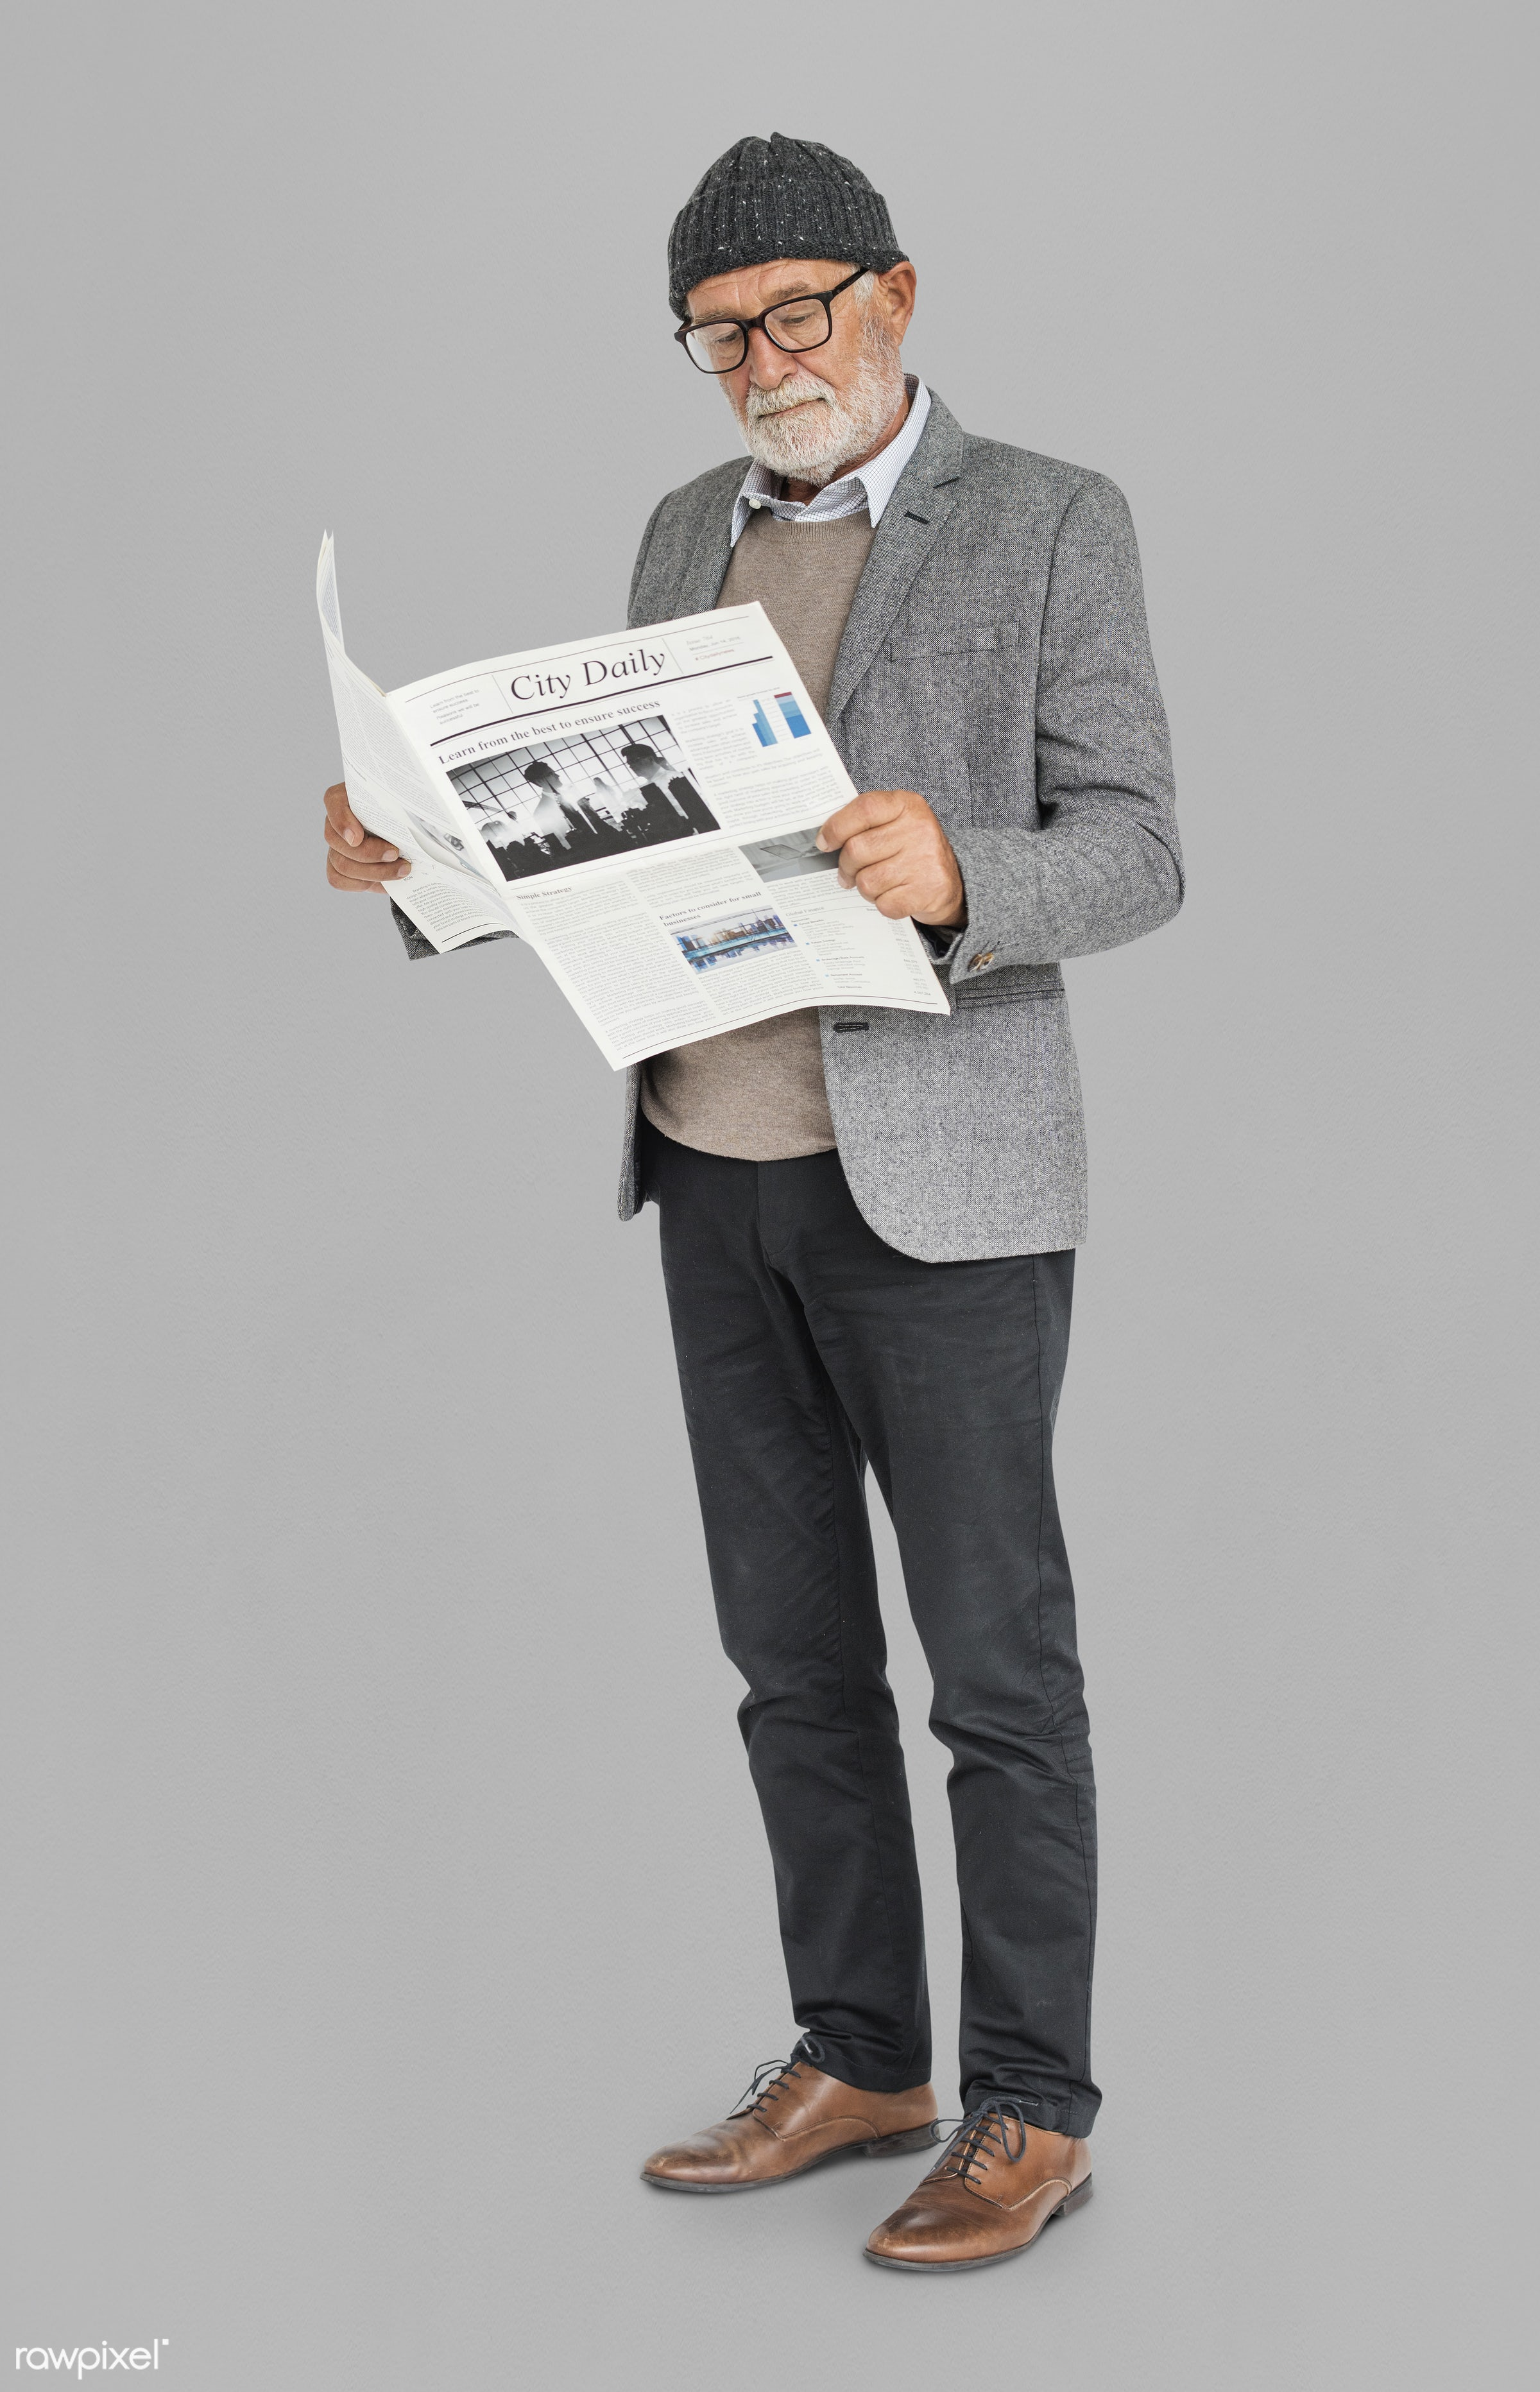 expression, studio, model, person, reading, full length, white collar worker, race, people, business, businessman, style,...